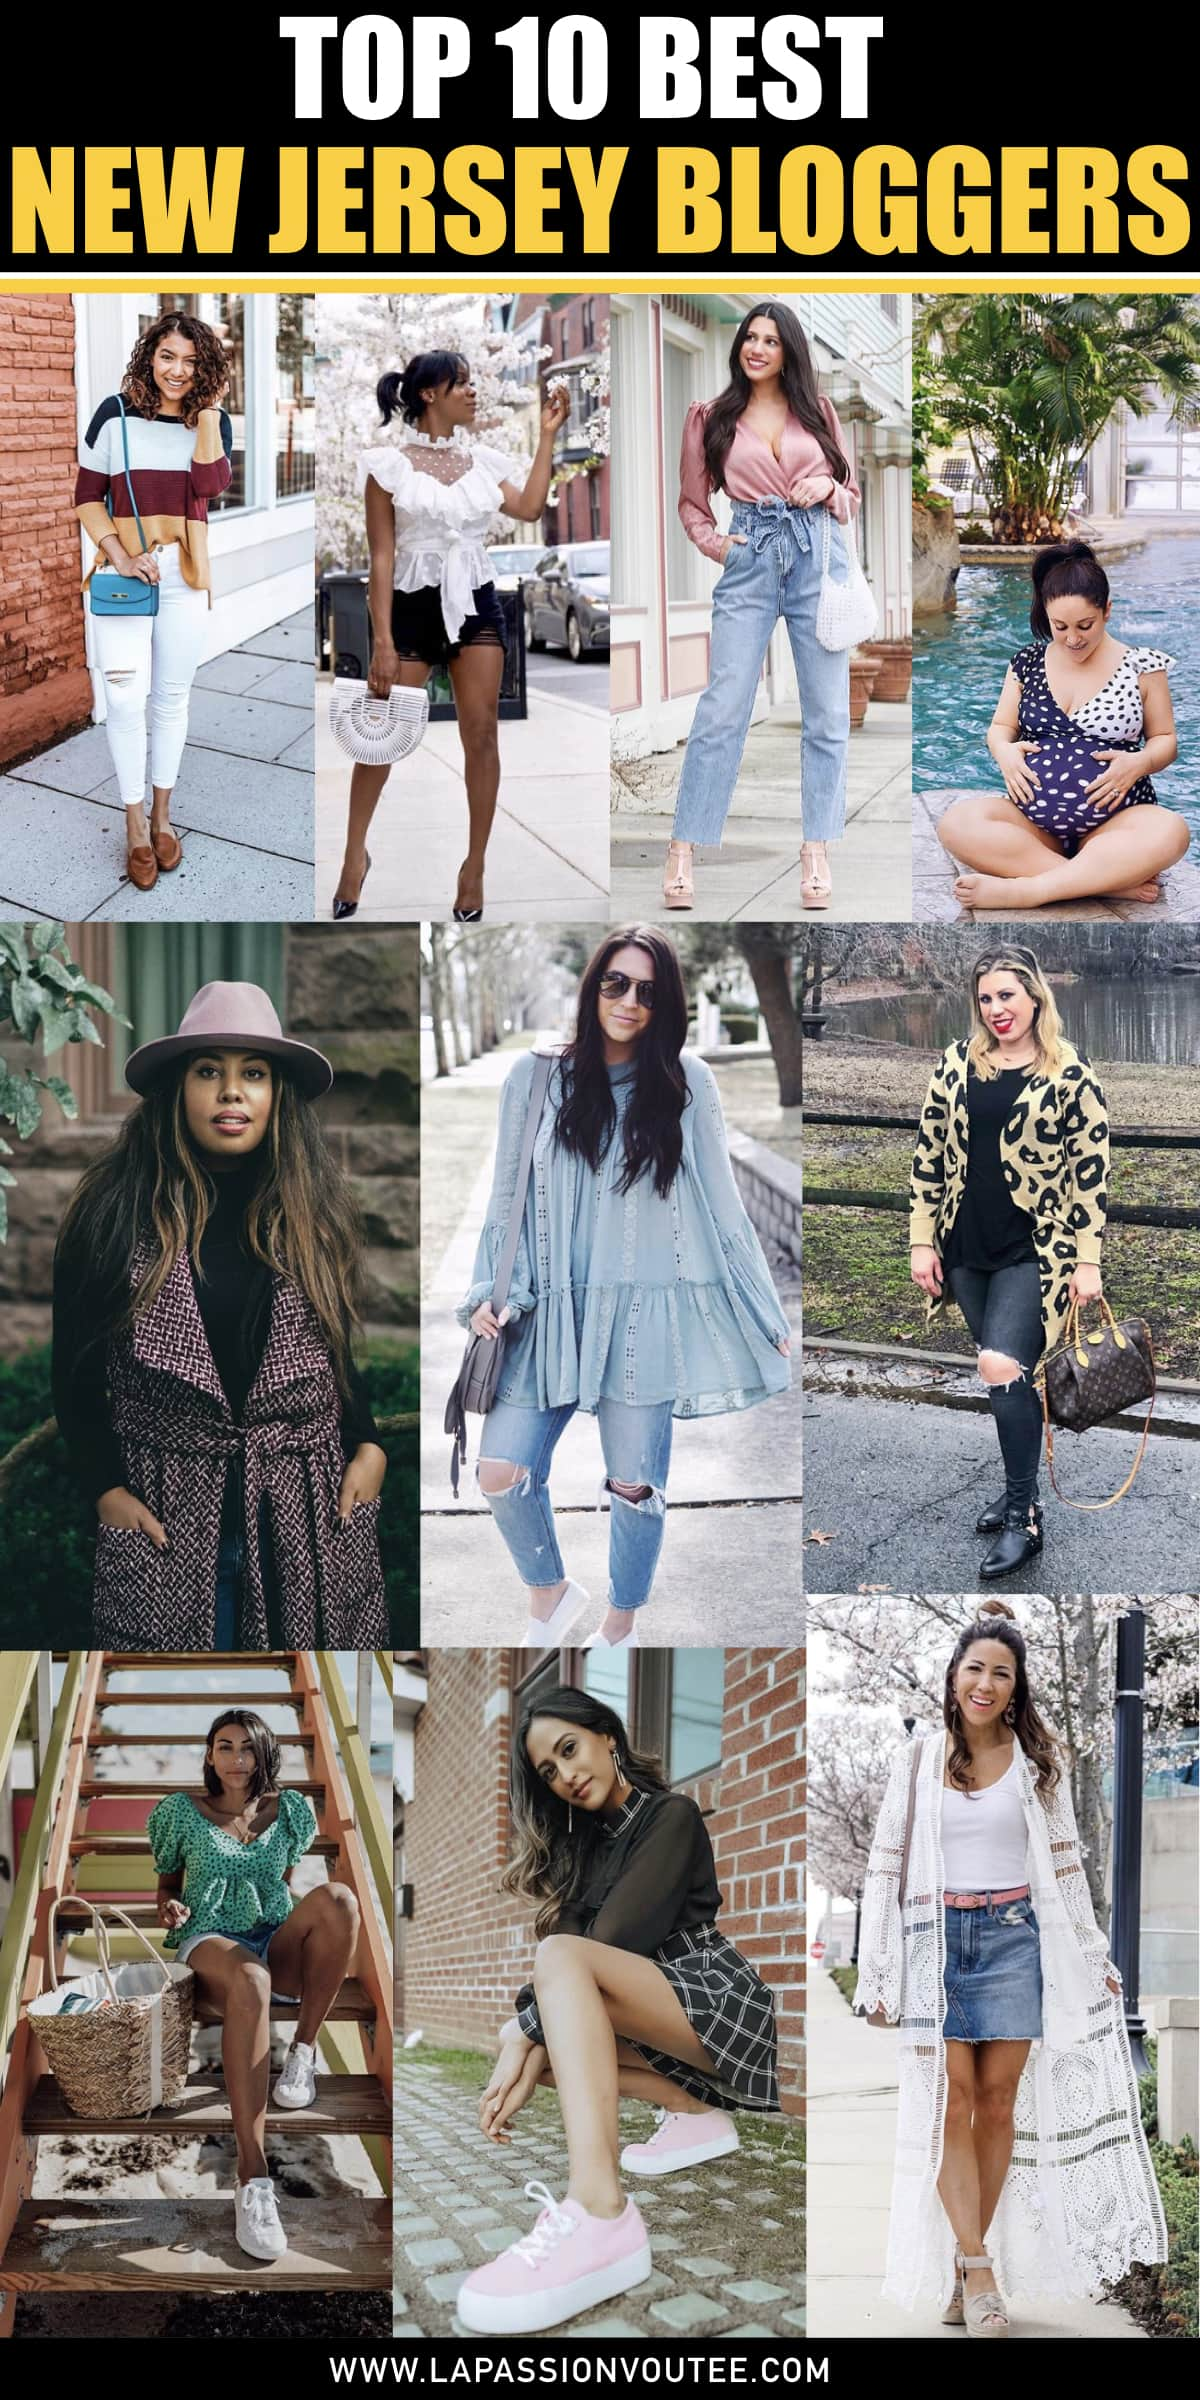 It's no secret that New York is the hub of fashion and some of the most well-known fashion bloggers. However, a few miles away from New York, you'll discover the best New Jersey bloggers killing it right now. Keep reading to discover the best local fashion bloggers in The Garden State!  #fashionblog  #fashionblogging #newjersey #fashionista